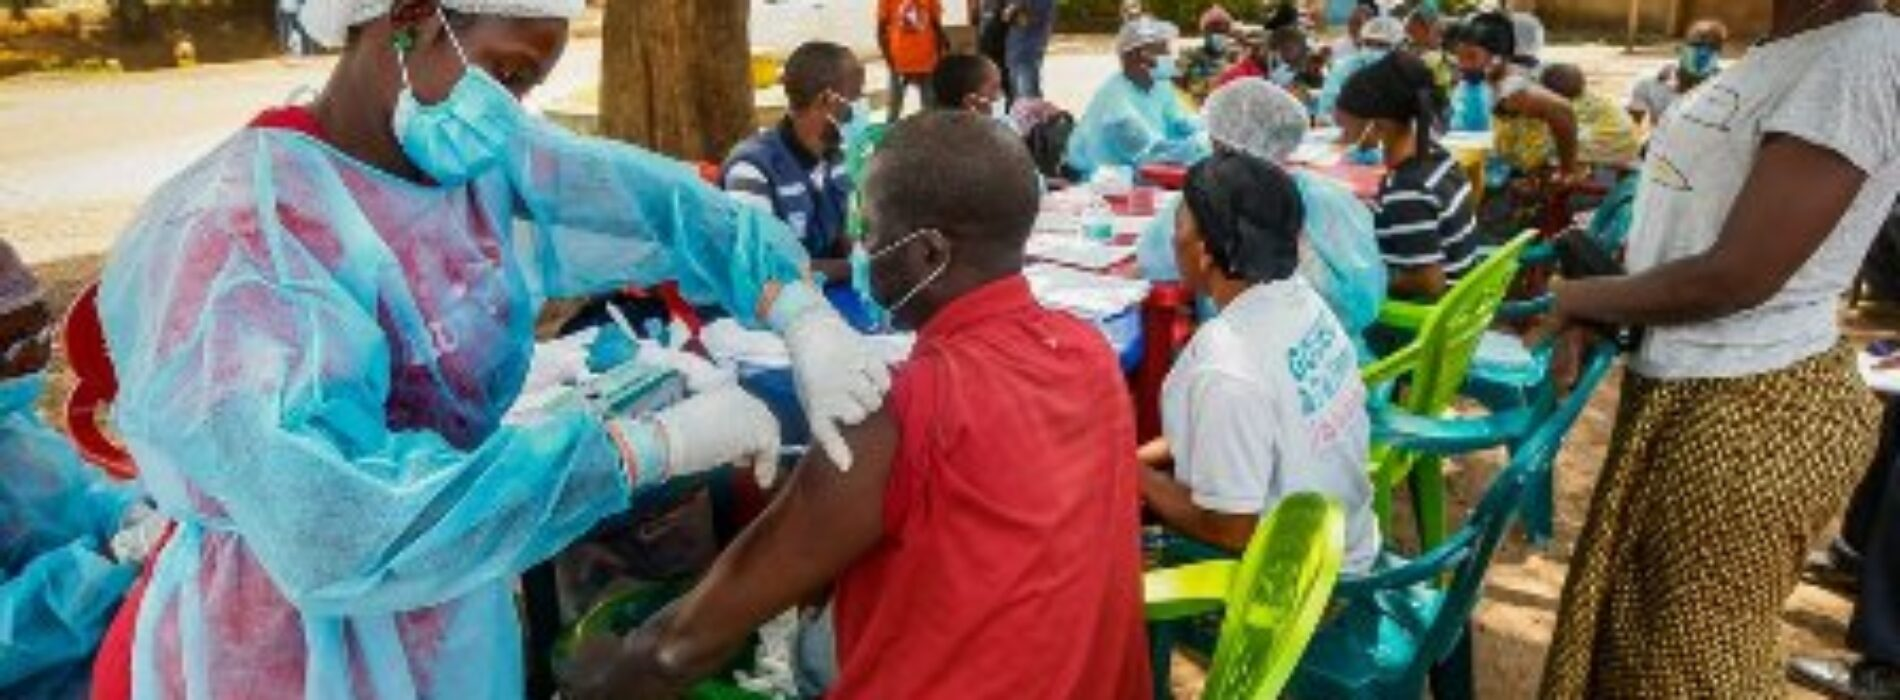 West Africa Covid-19 deaths surge amid Ebola and other outbreaks